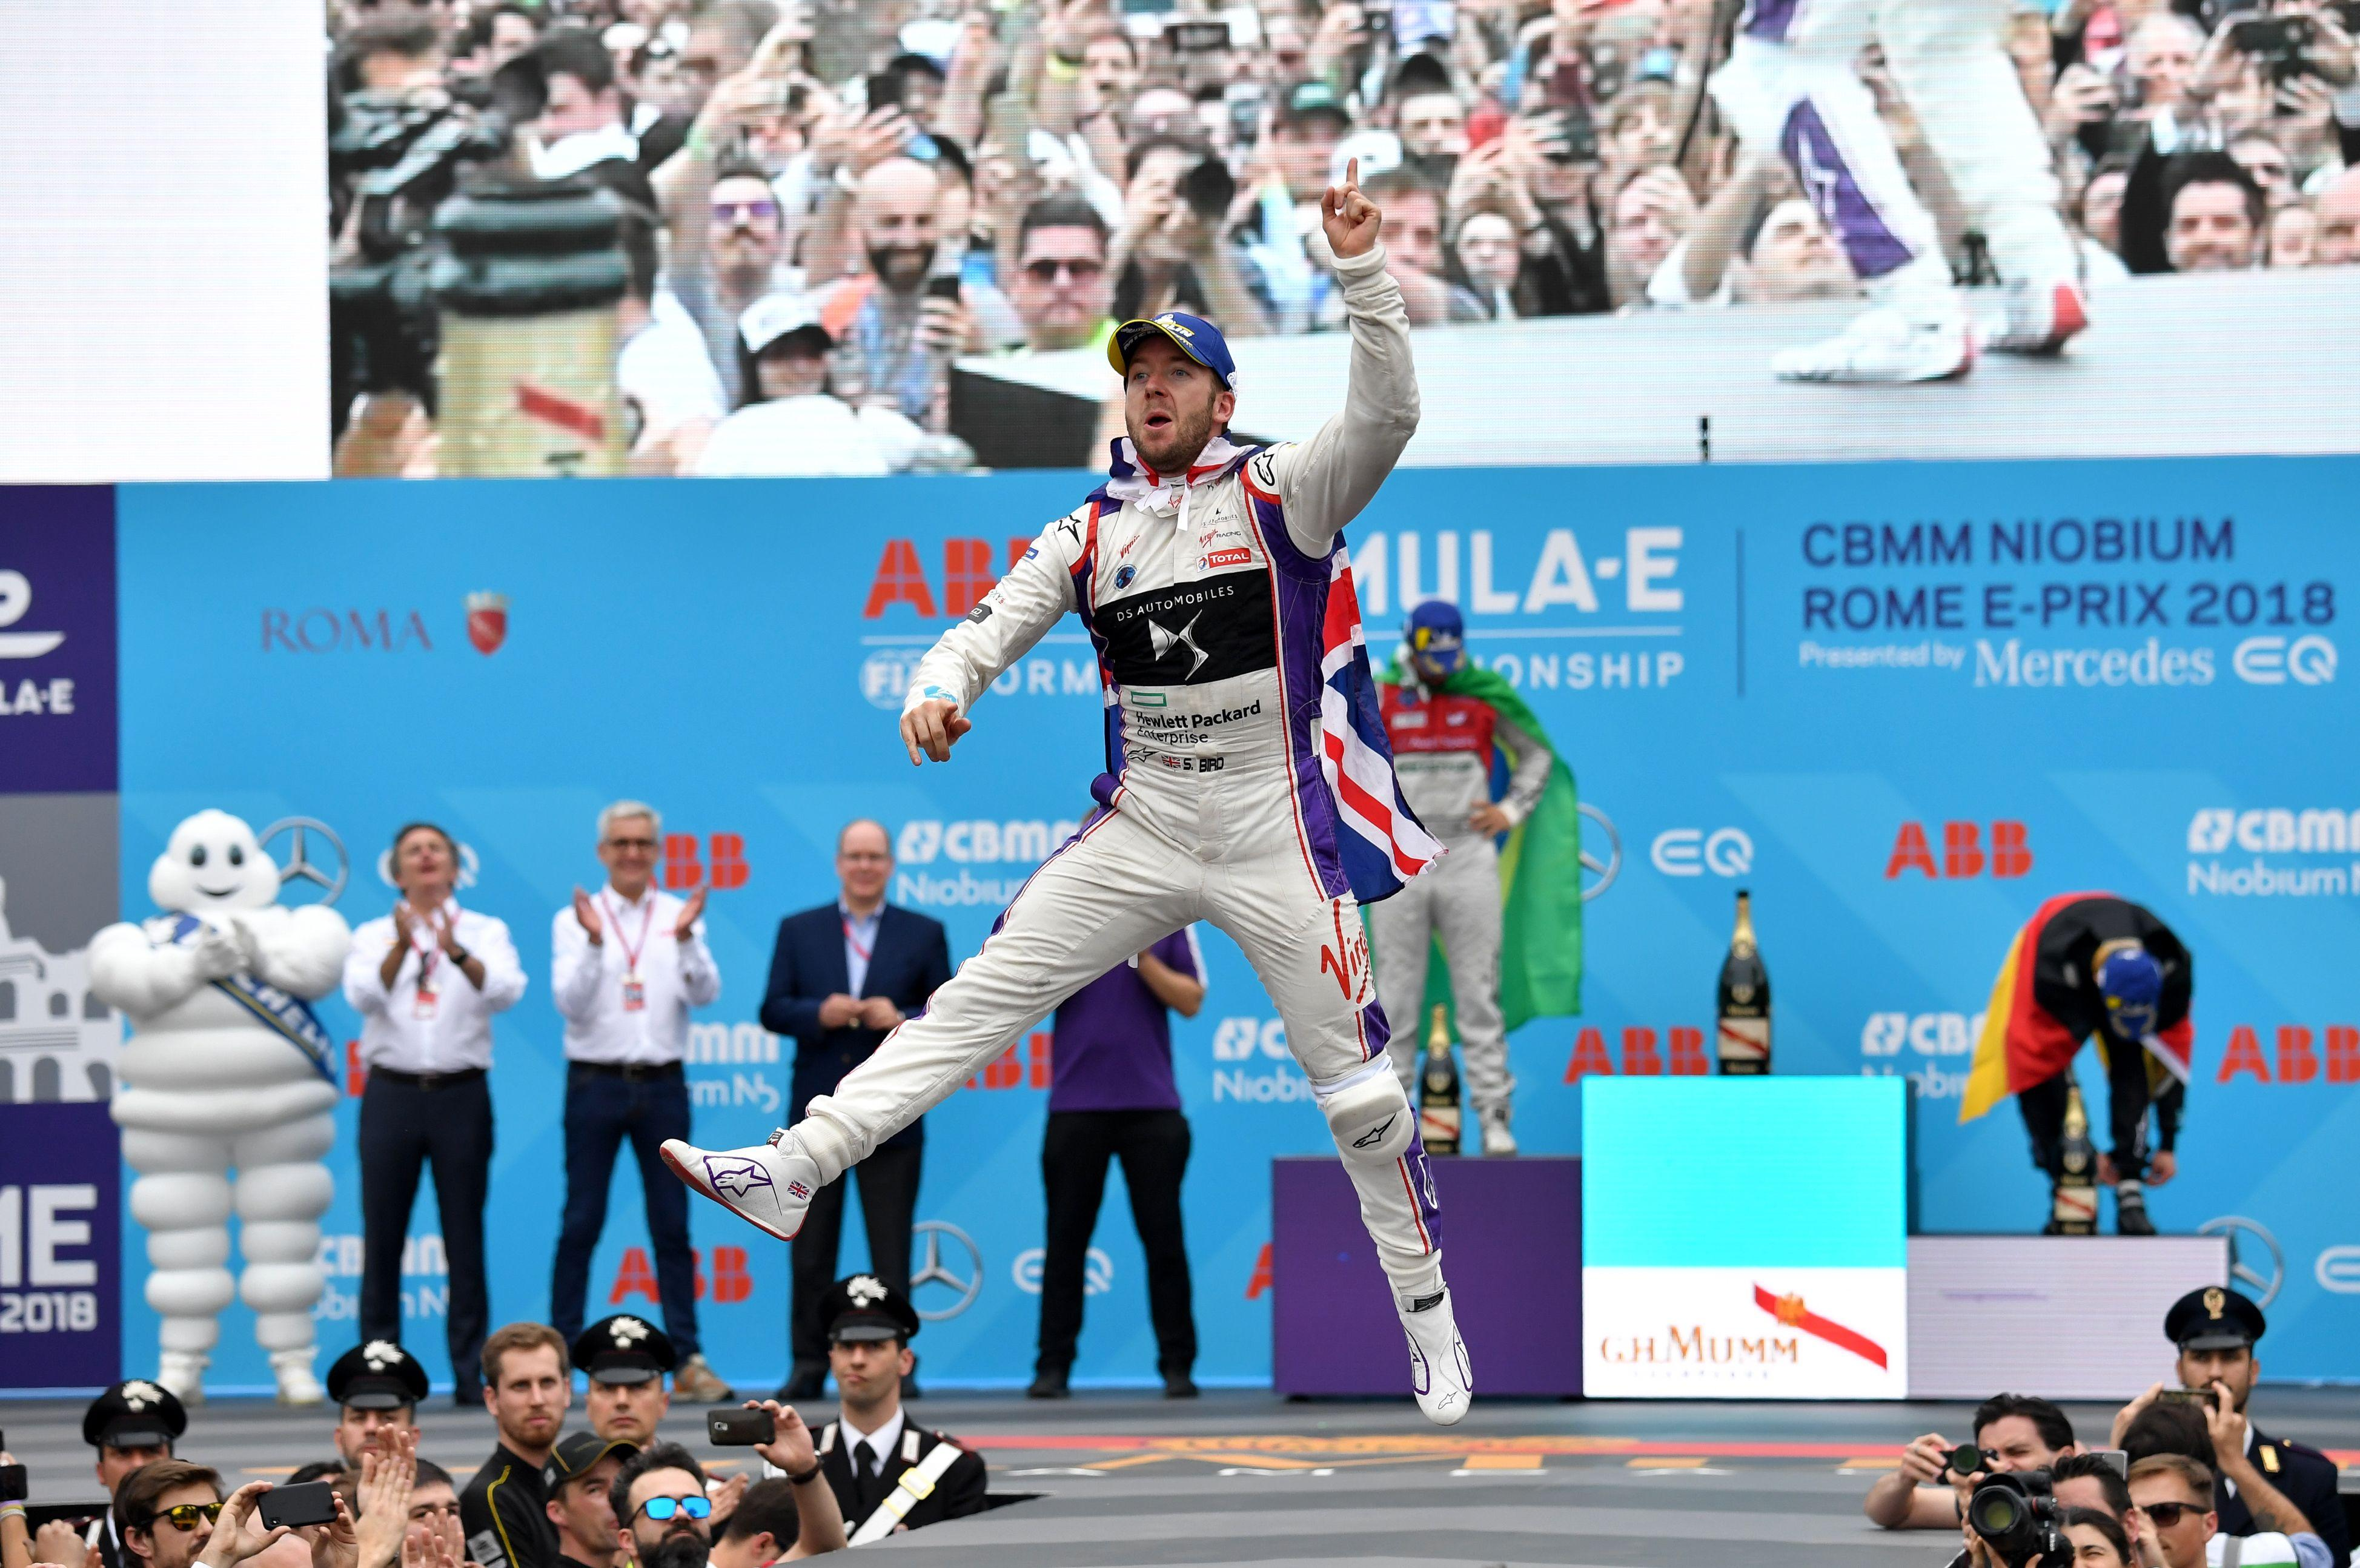 British driver Sam Bird took victory at the last race in Rome two weeks ago